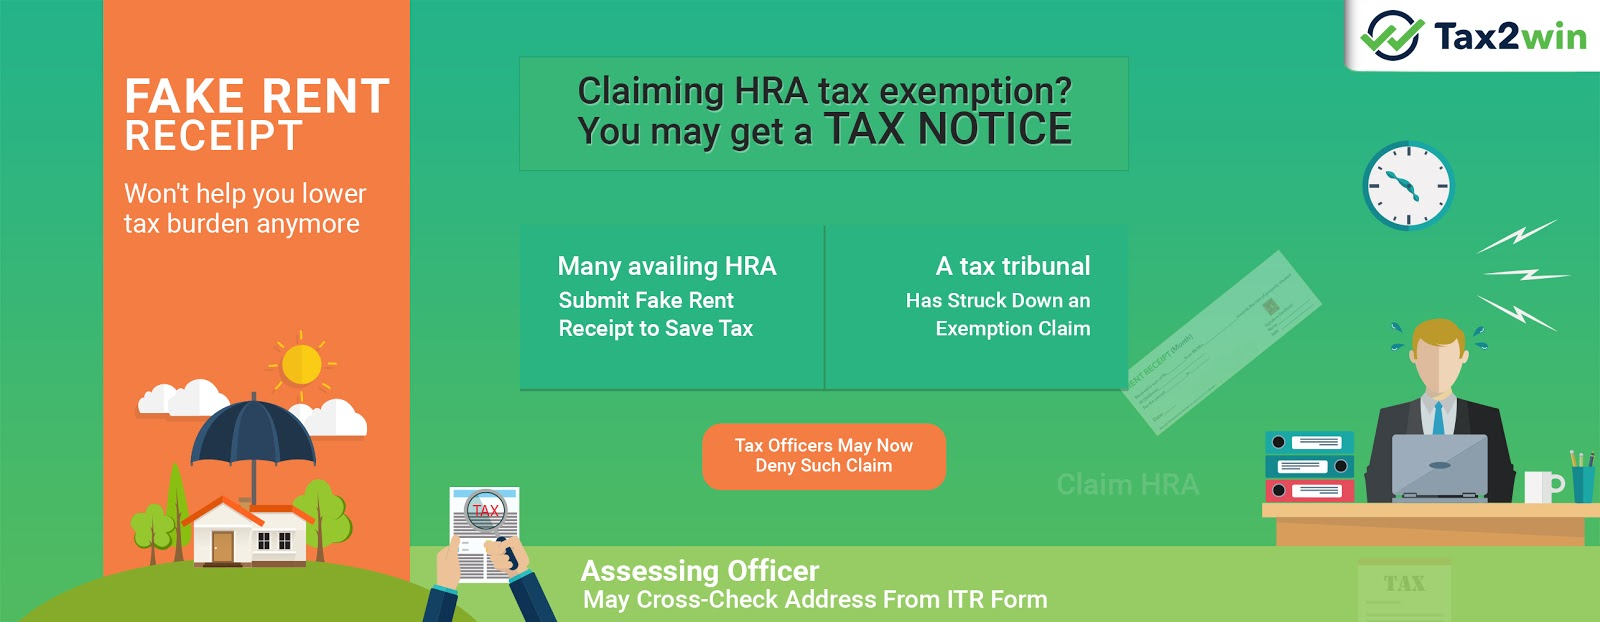 Claiming HRA Tax Exemption? You may get a TAX NOTICE